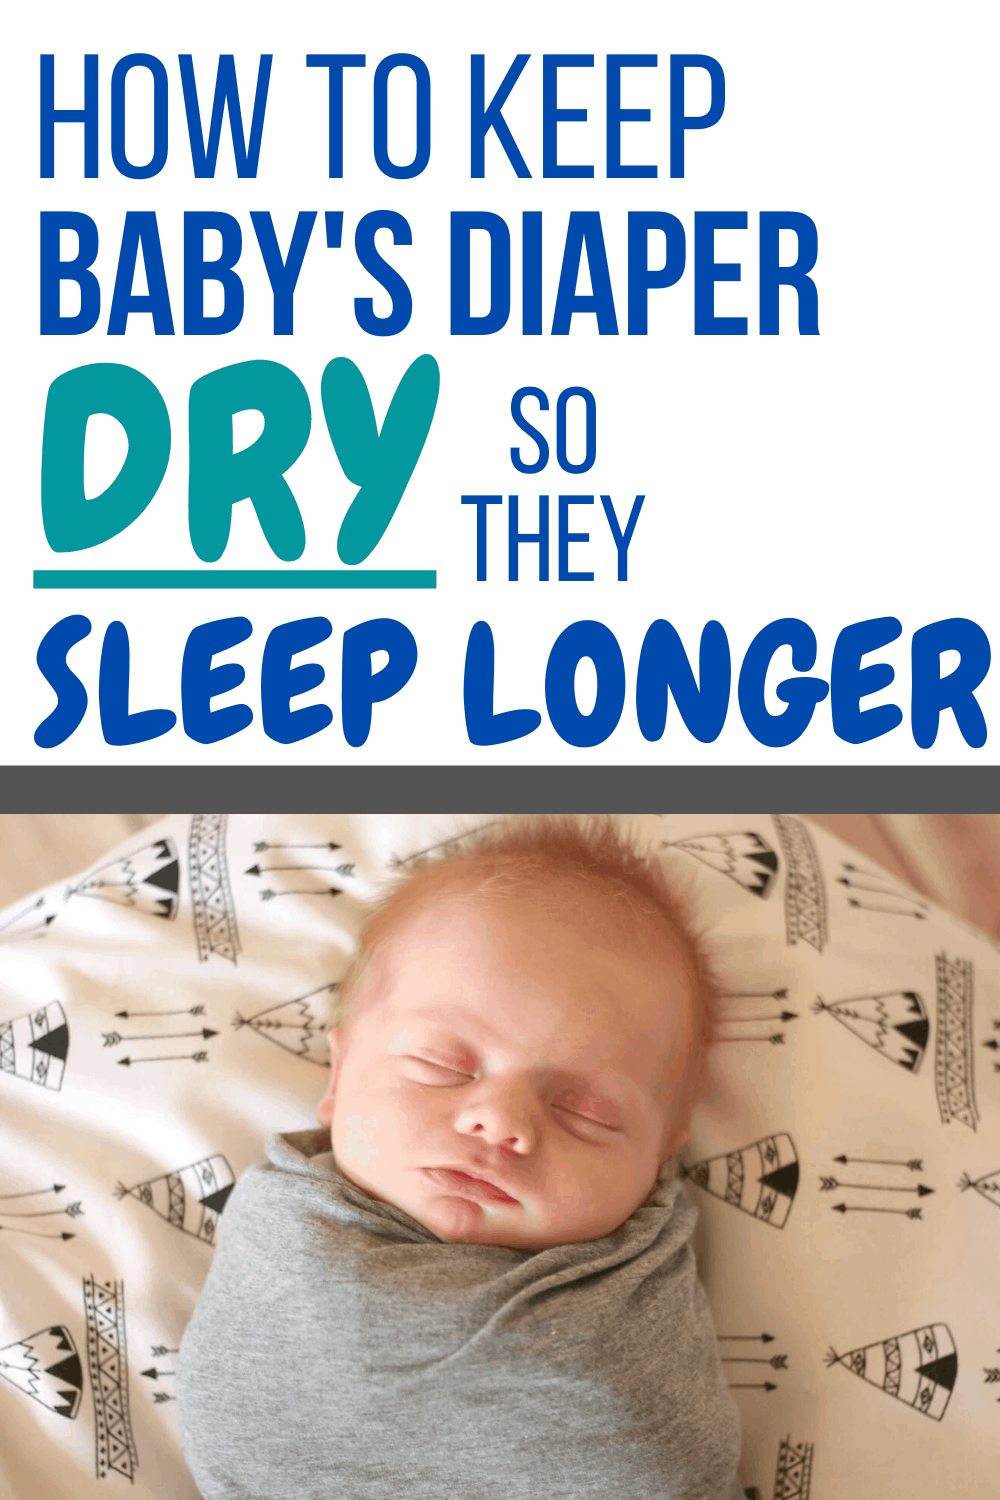 Say Goodbye to SUPER wet diapers that cause dampness, leaks, diaper rash, and an uncomfortable baby! An easy solution that helps baby stay dry and sleep longer! #babysleep #baby #newborn #babystuff